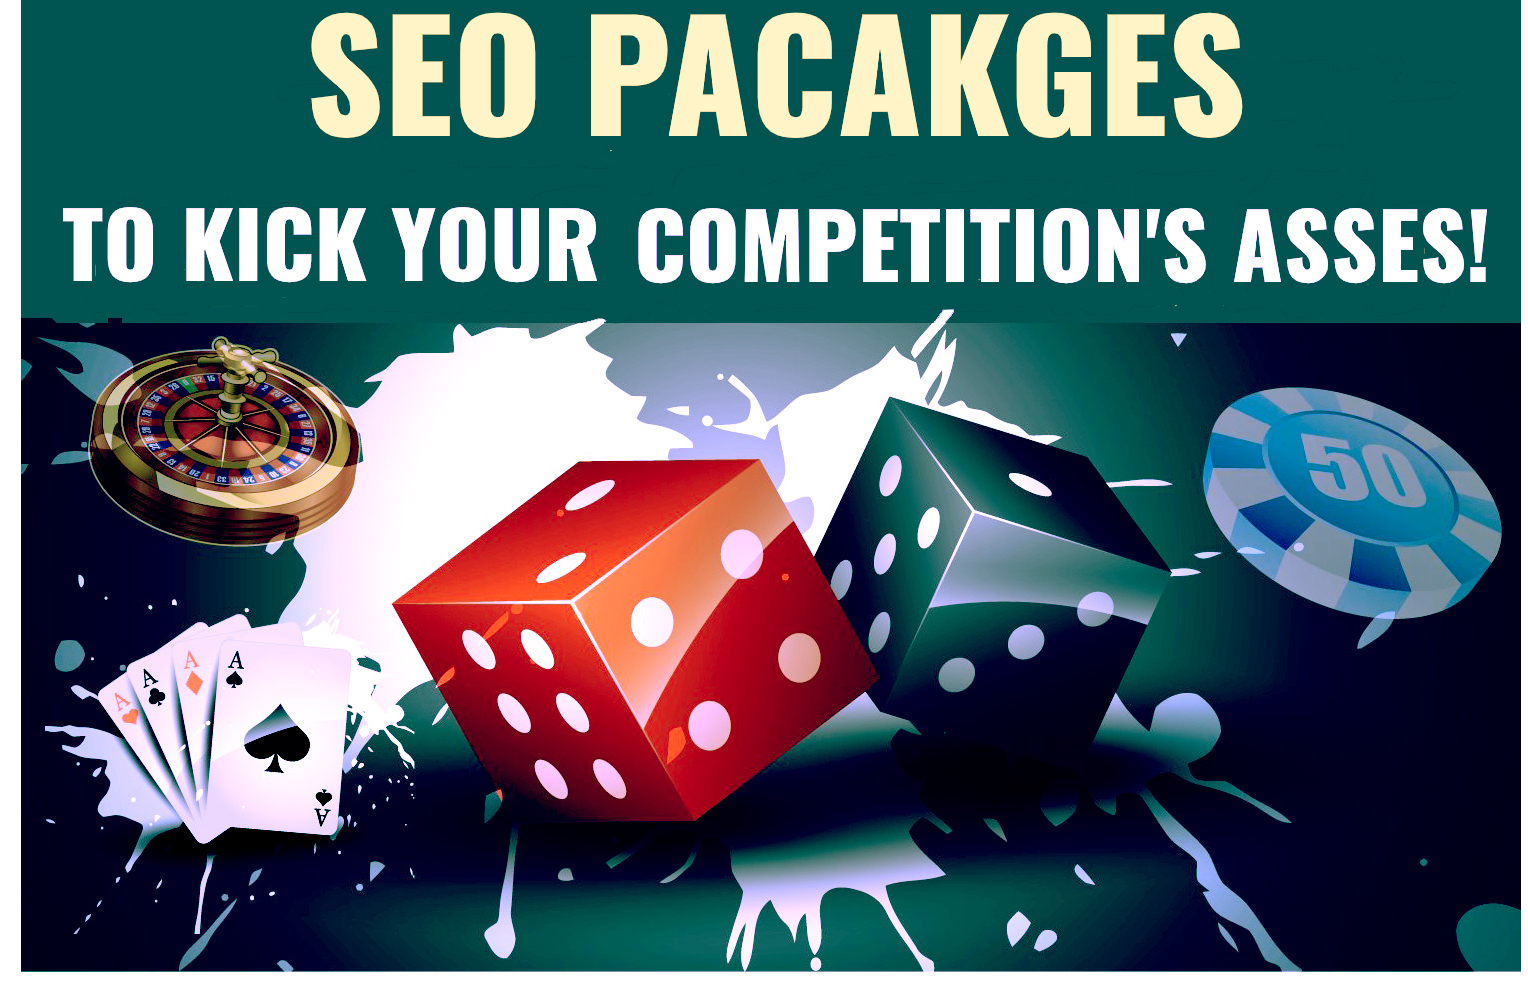 Casino Poker Gambling Judi Best Seo Strategy 2021 - Tested Links With Guaranteed Top Ranking Results